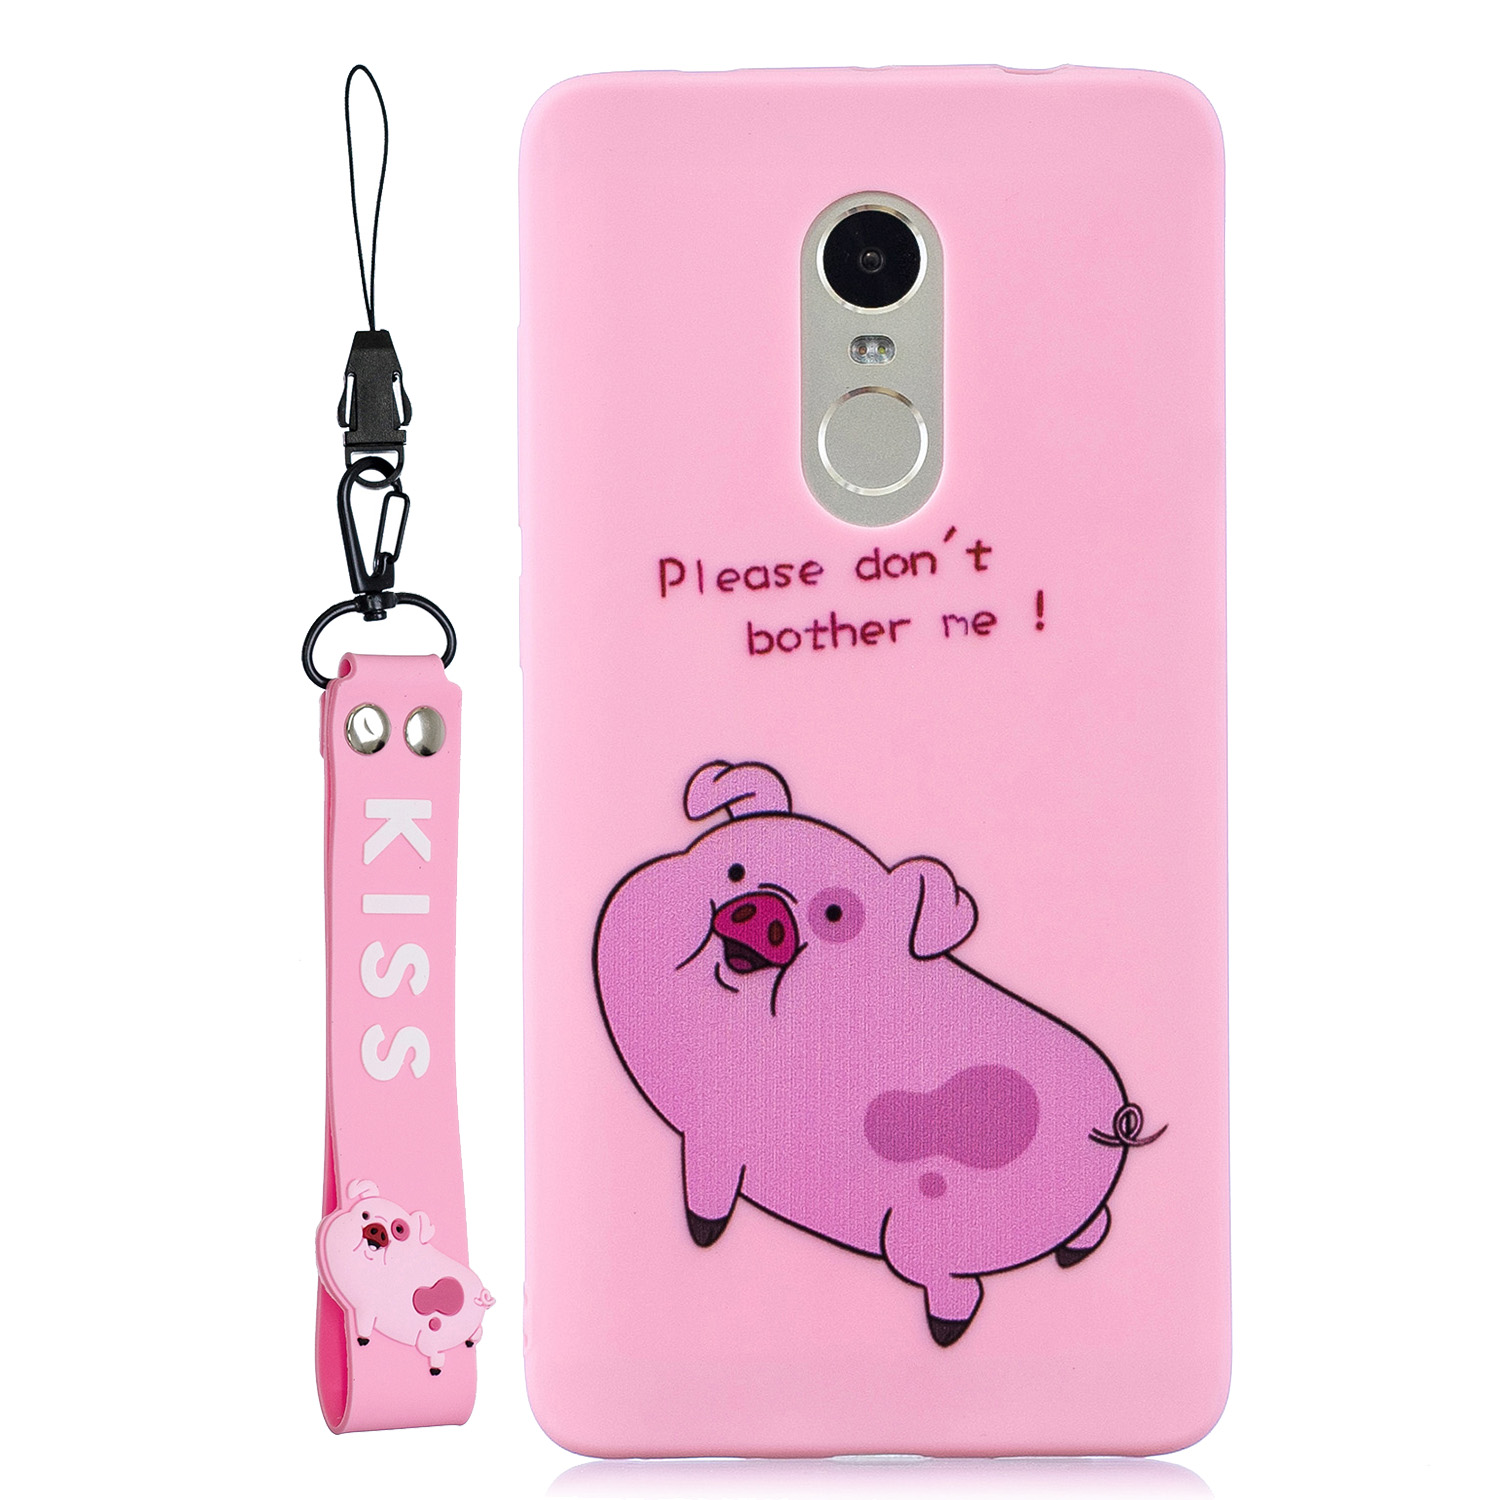 For Redmi note 4X/NOTE 4 Cartoon Lovely Coloured Painted Soft TPU Back Cover Non-slip Shockproof Full Protective Case with Lanyard Rose red